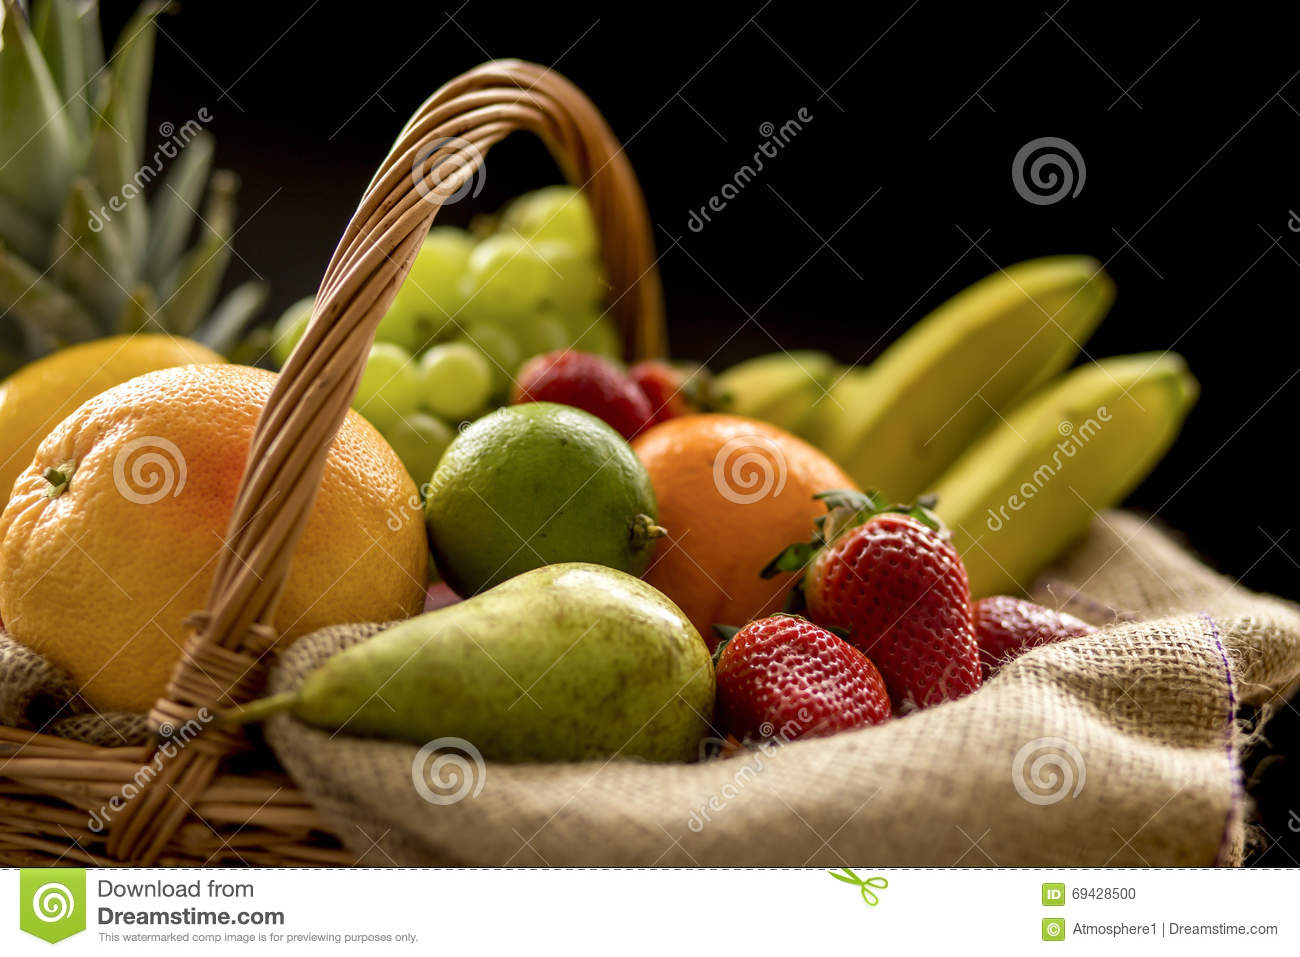 Horizontal Closeup detail on a basket full of fruit on a dark background